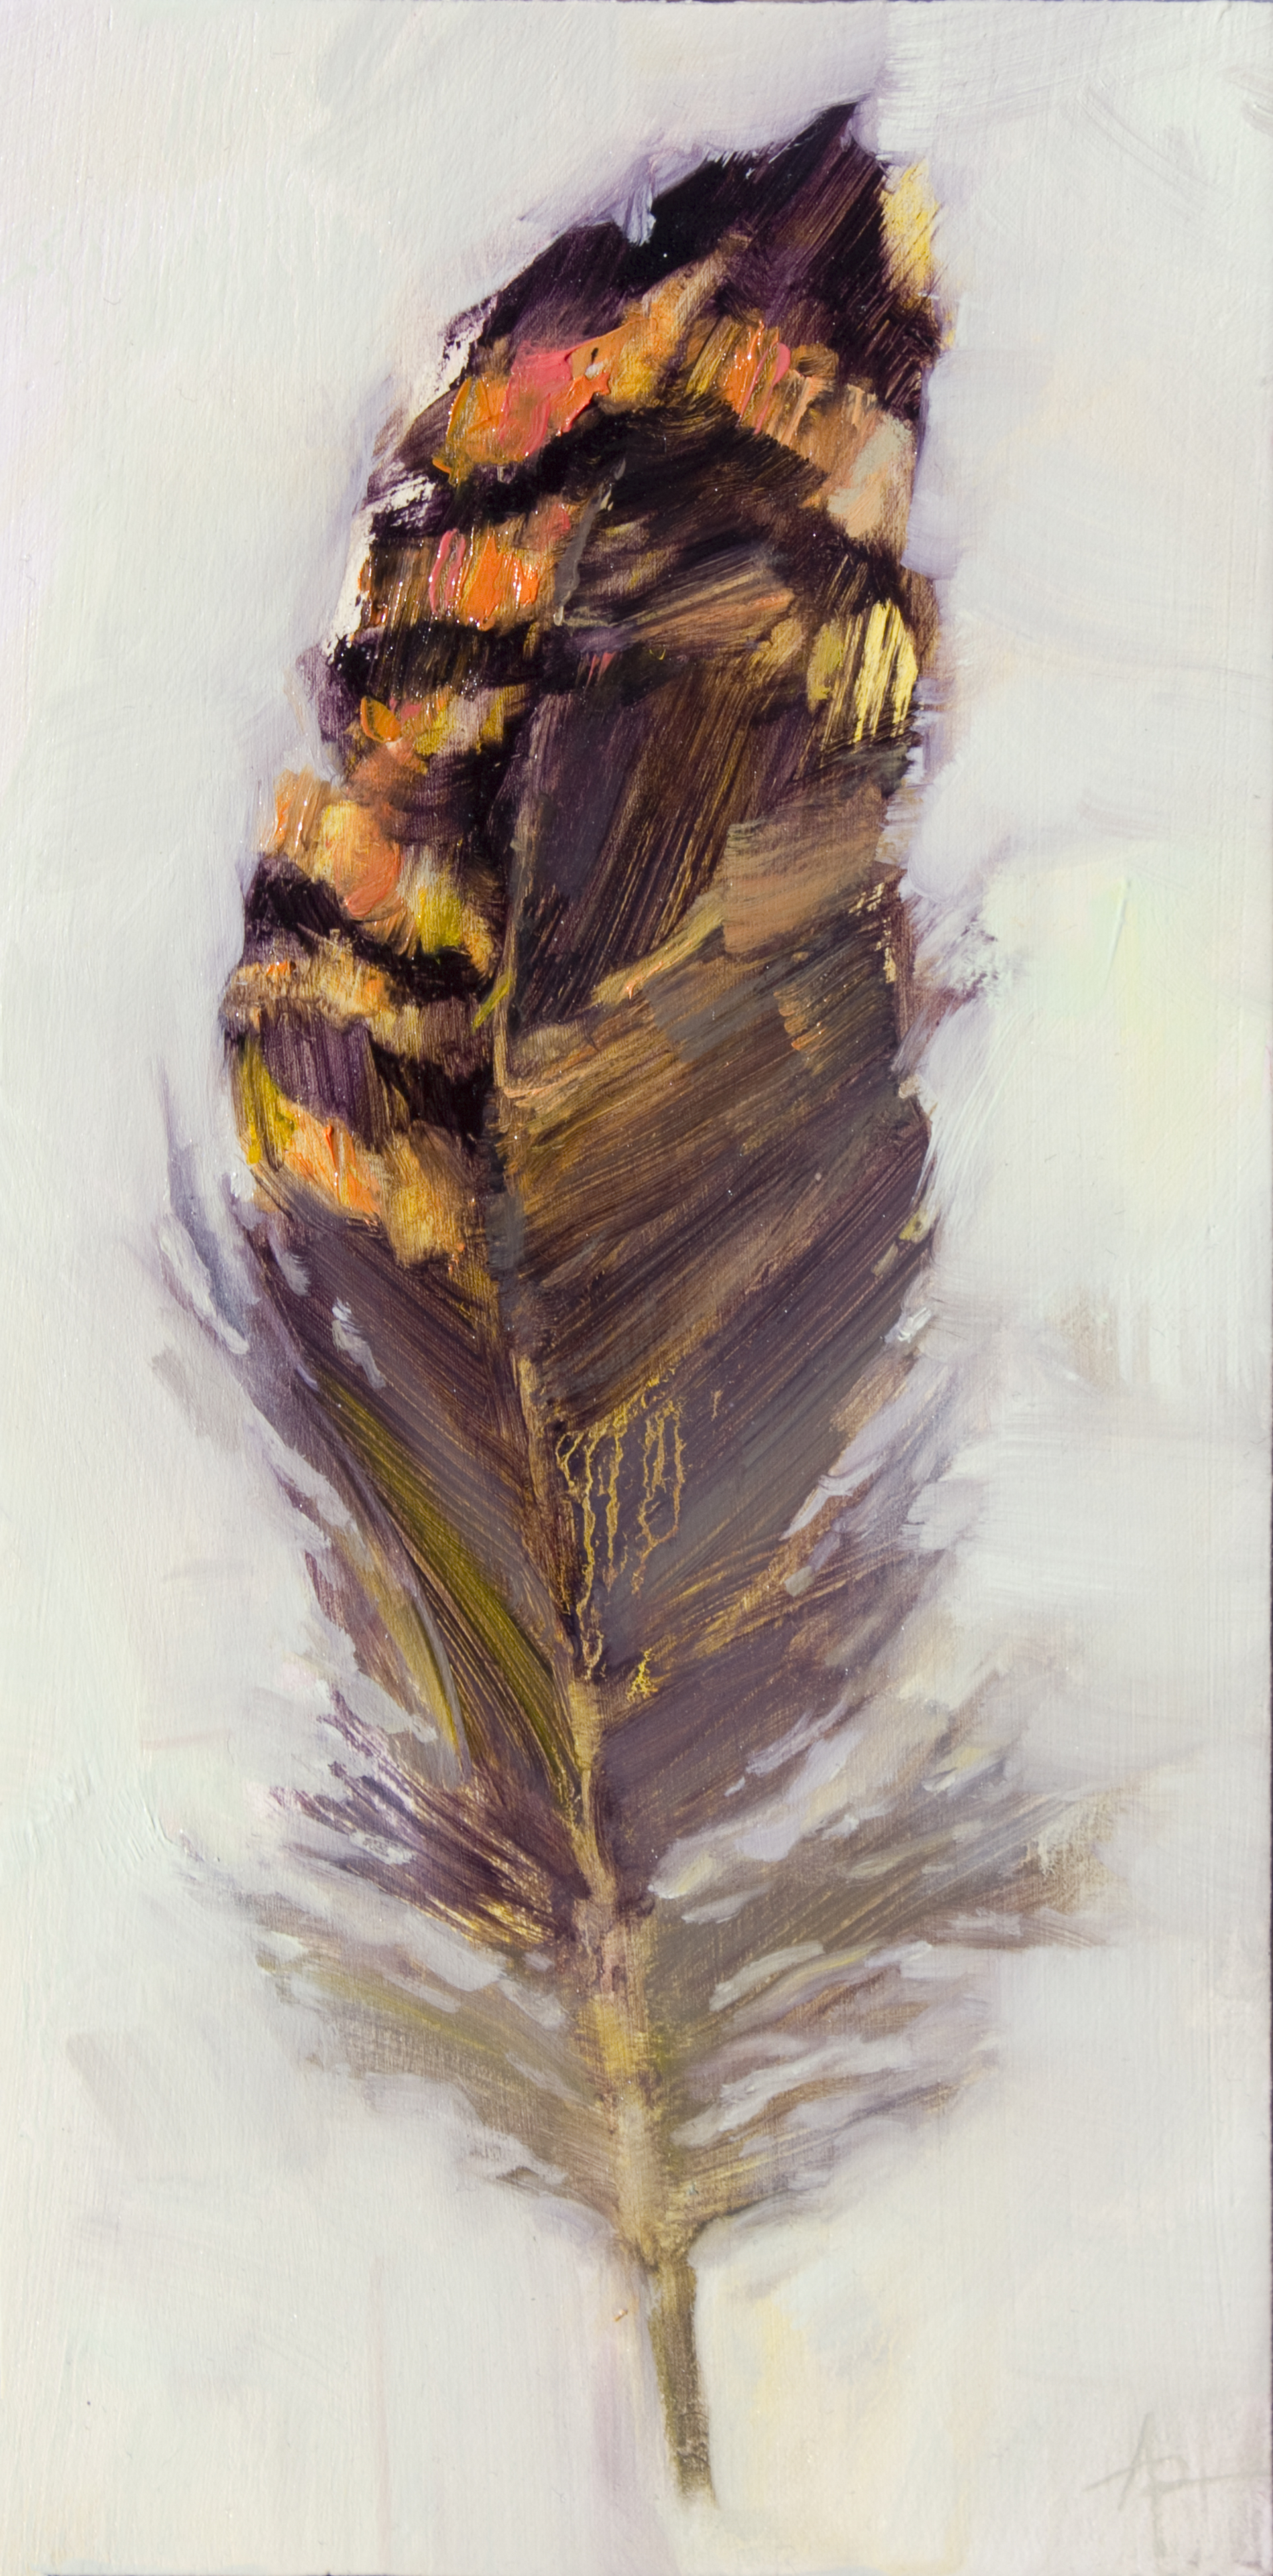 Feather 2 by Angie Renfro